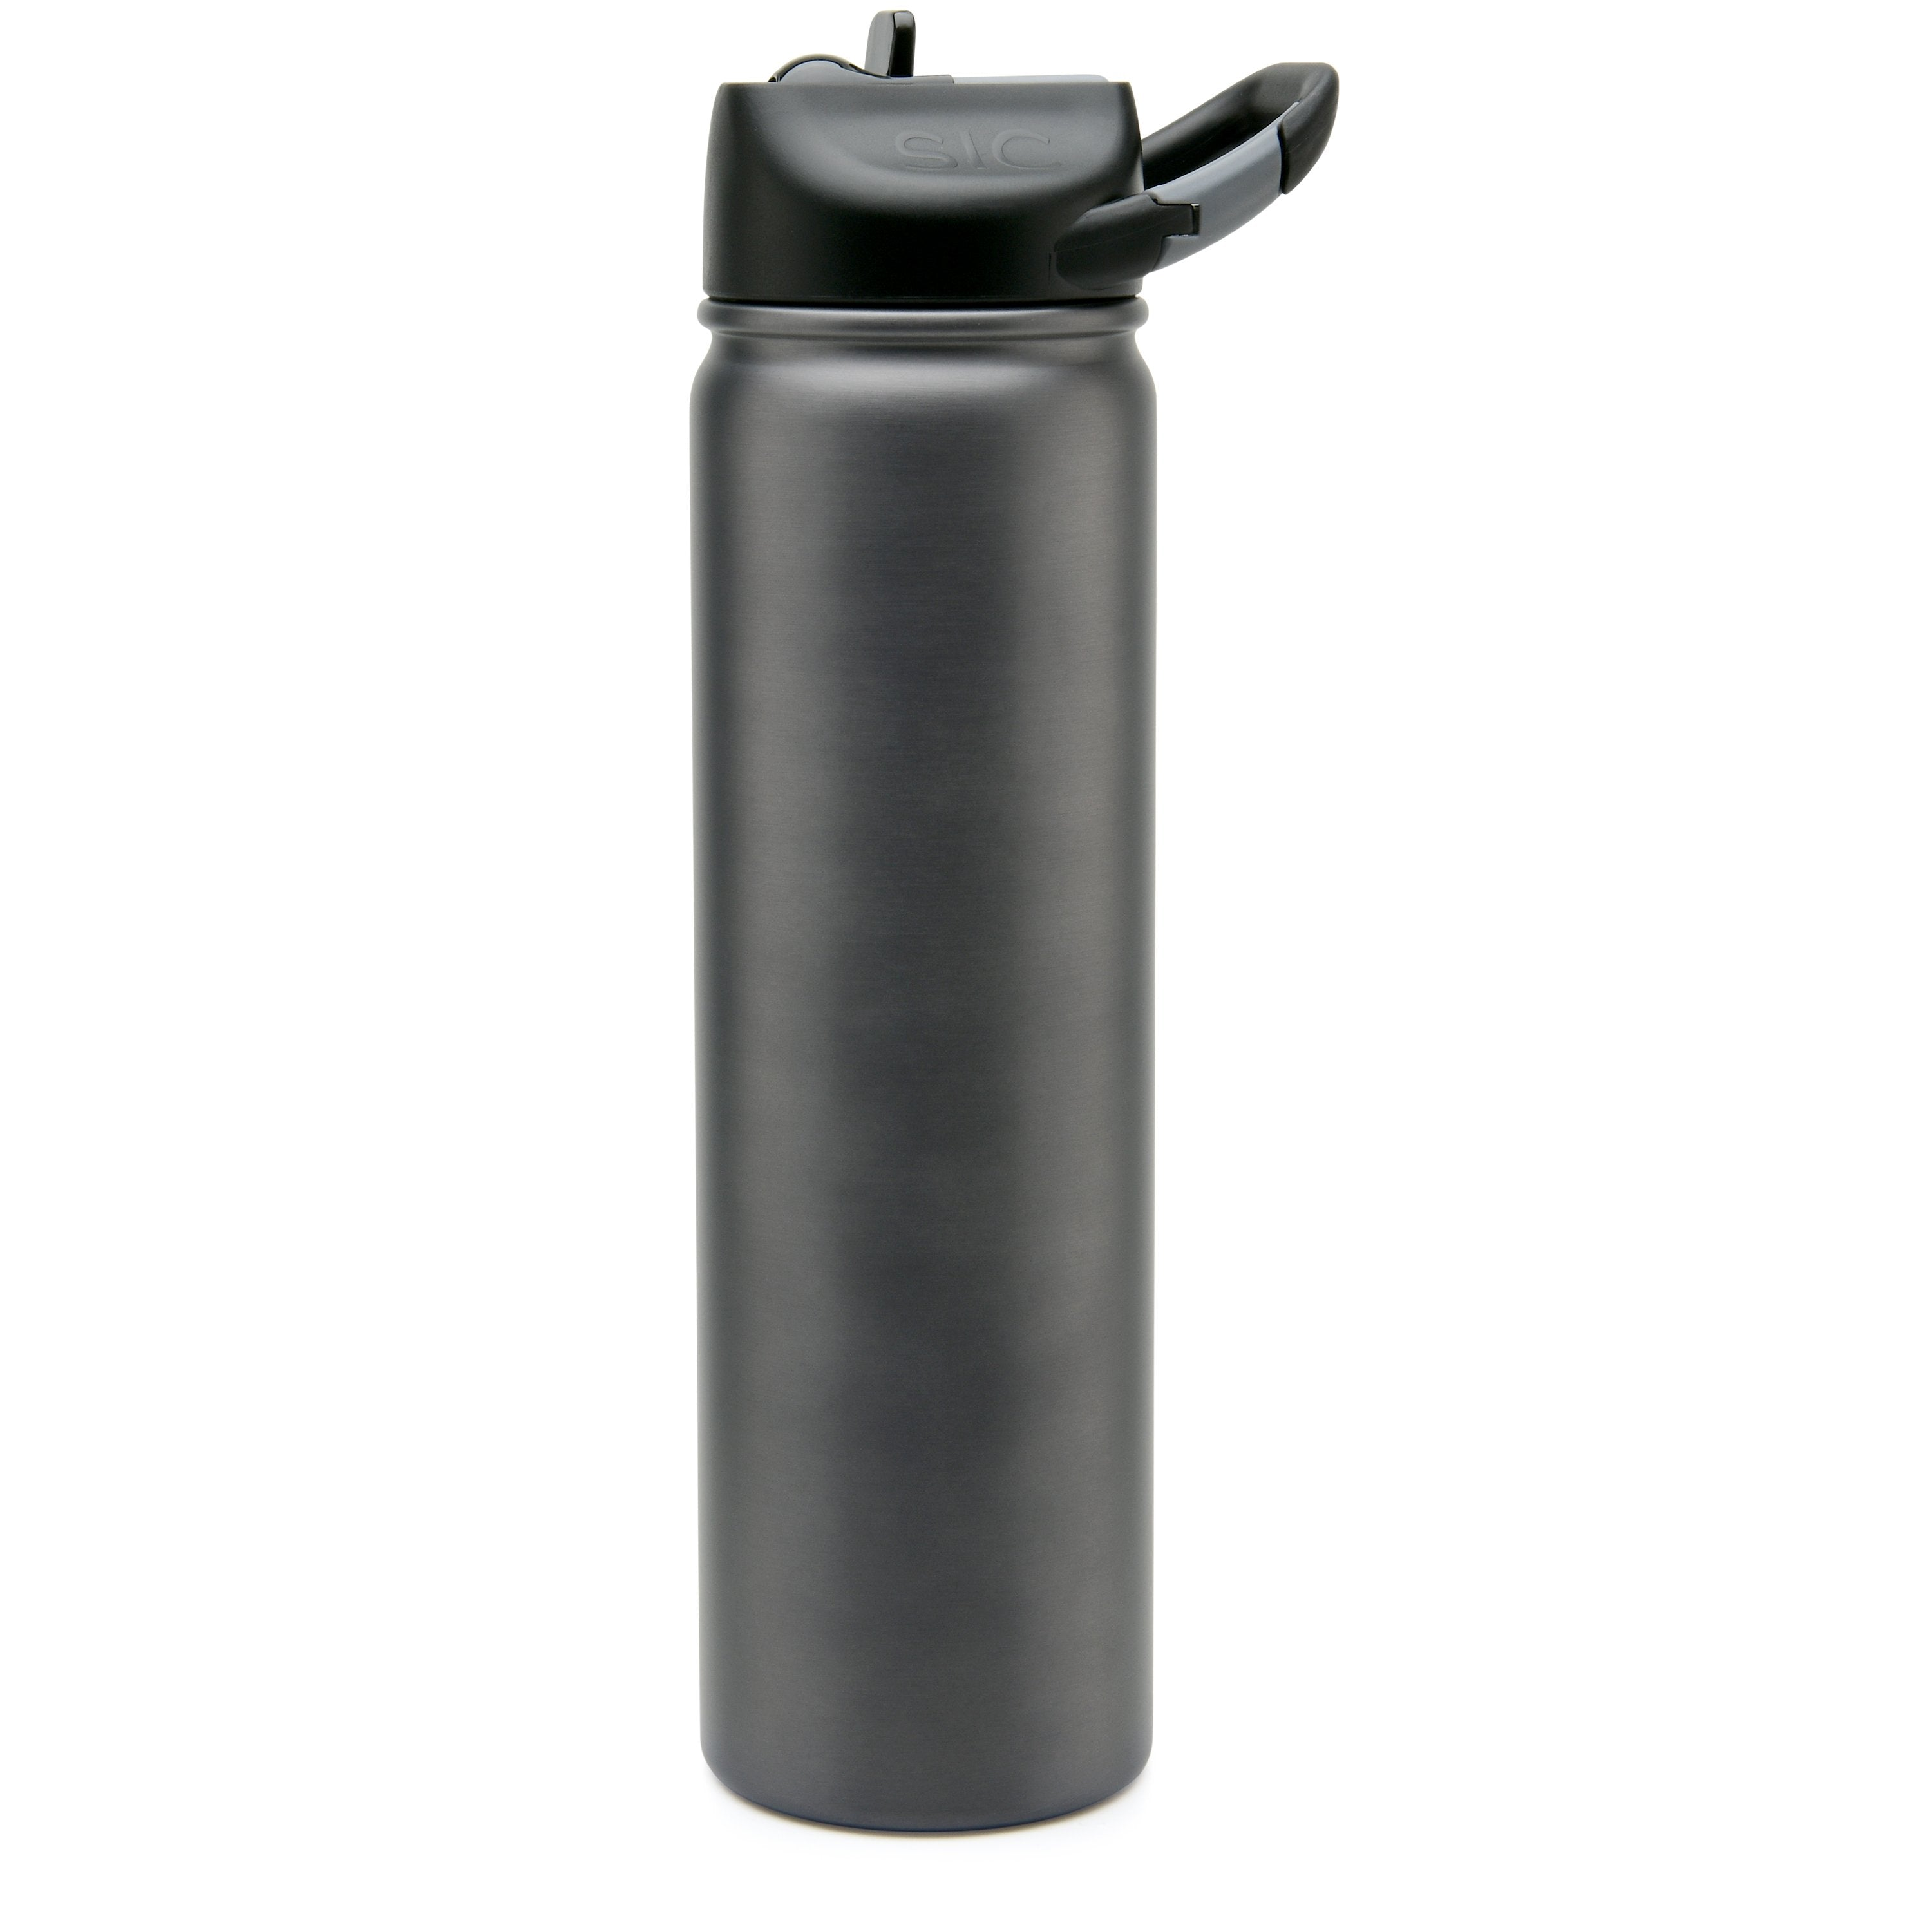 Seriously Ice Cold 800ml Gun Smoke (carabiner lid)